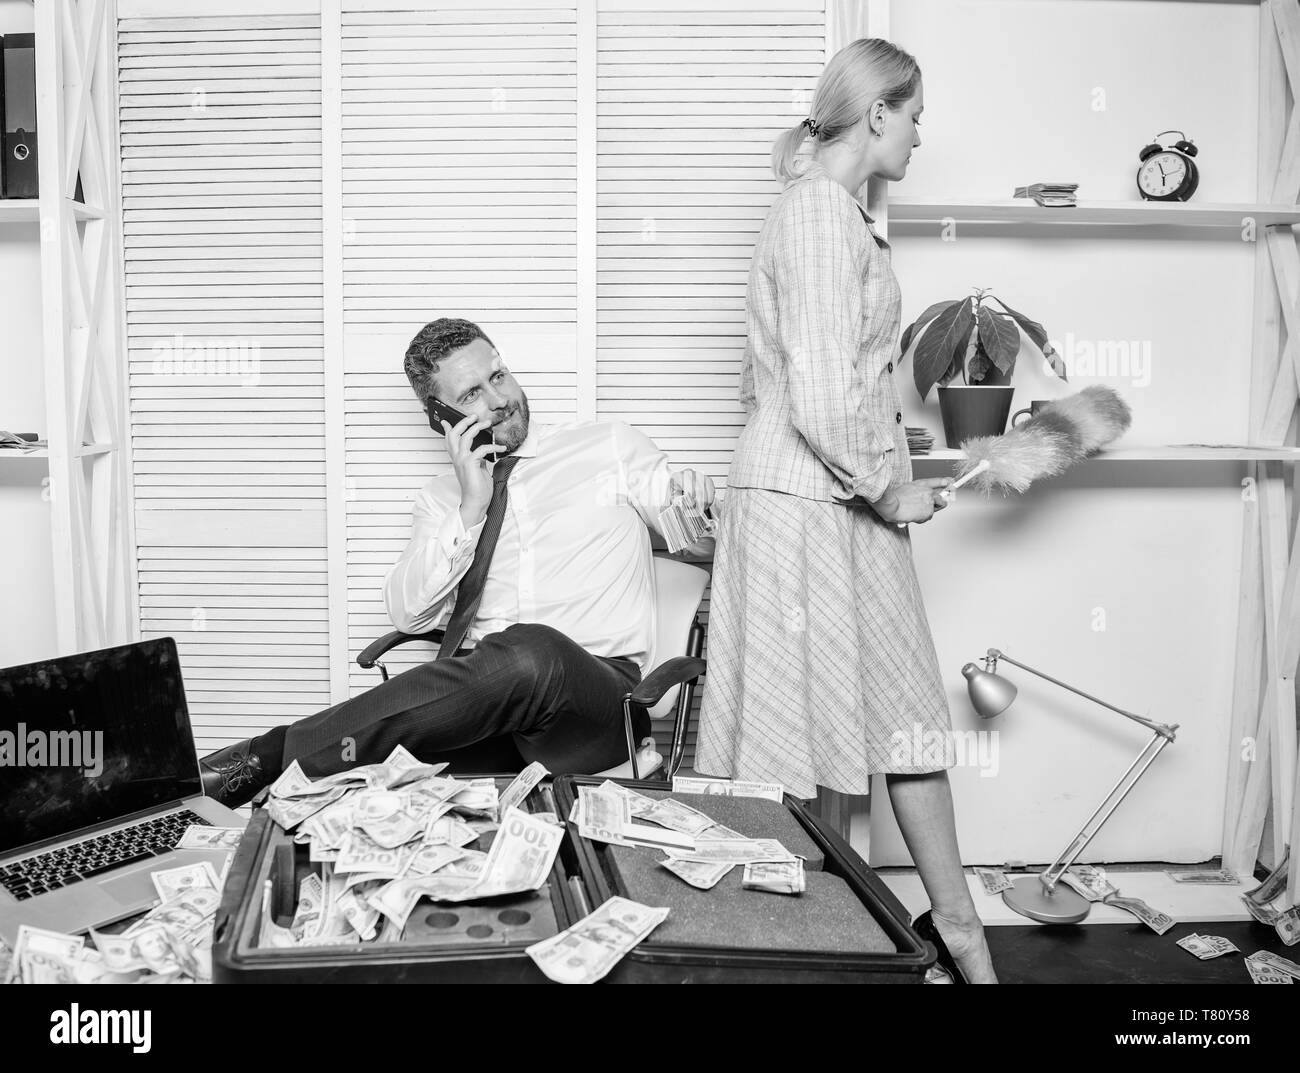 Discrimination concept. Equal rights for education work and salary. Gender discrimination in business life. Female discrimination at workplace. Woman cleaning up office while boss counting money. - Stock Image